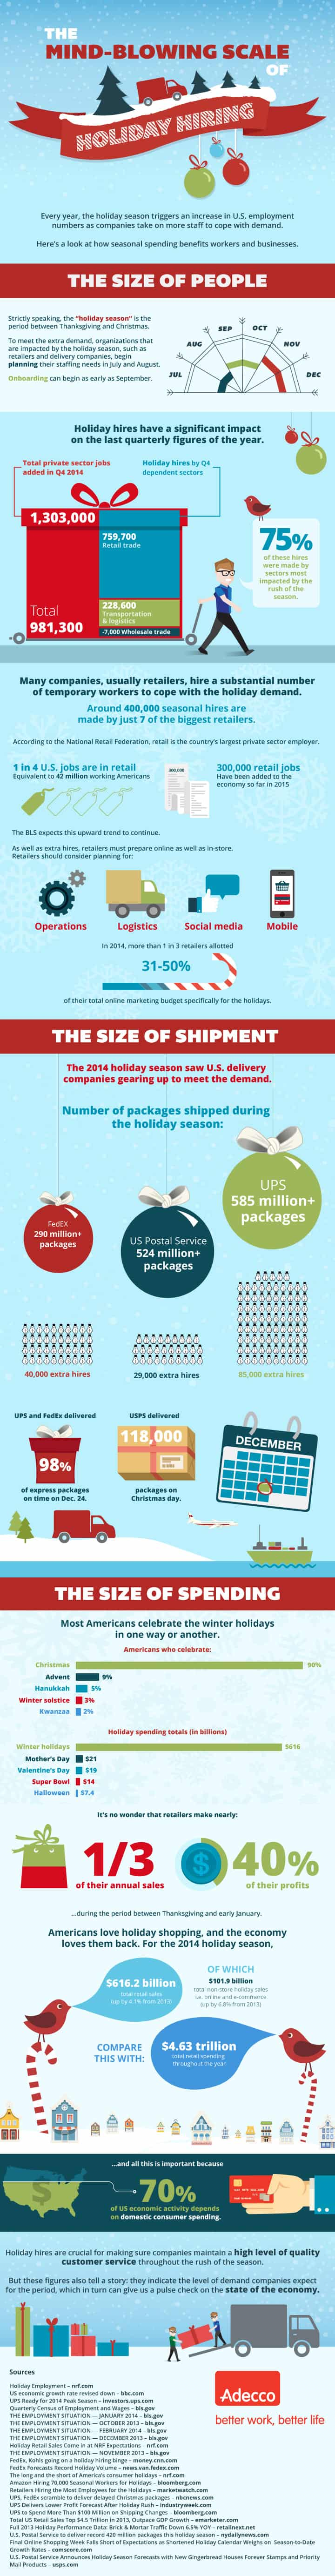 holiday hiring the ultimate breakdown of seasonal jobs holiday hiring 101 the ultimate breakdown of seasonal jobs